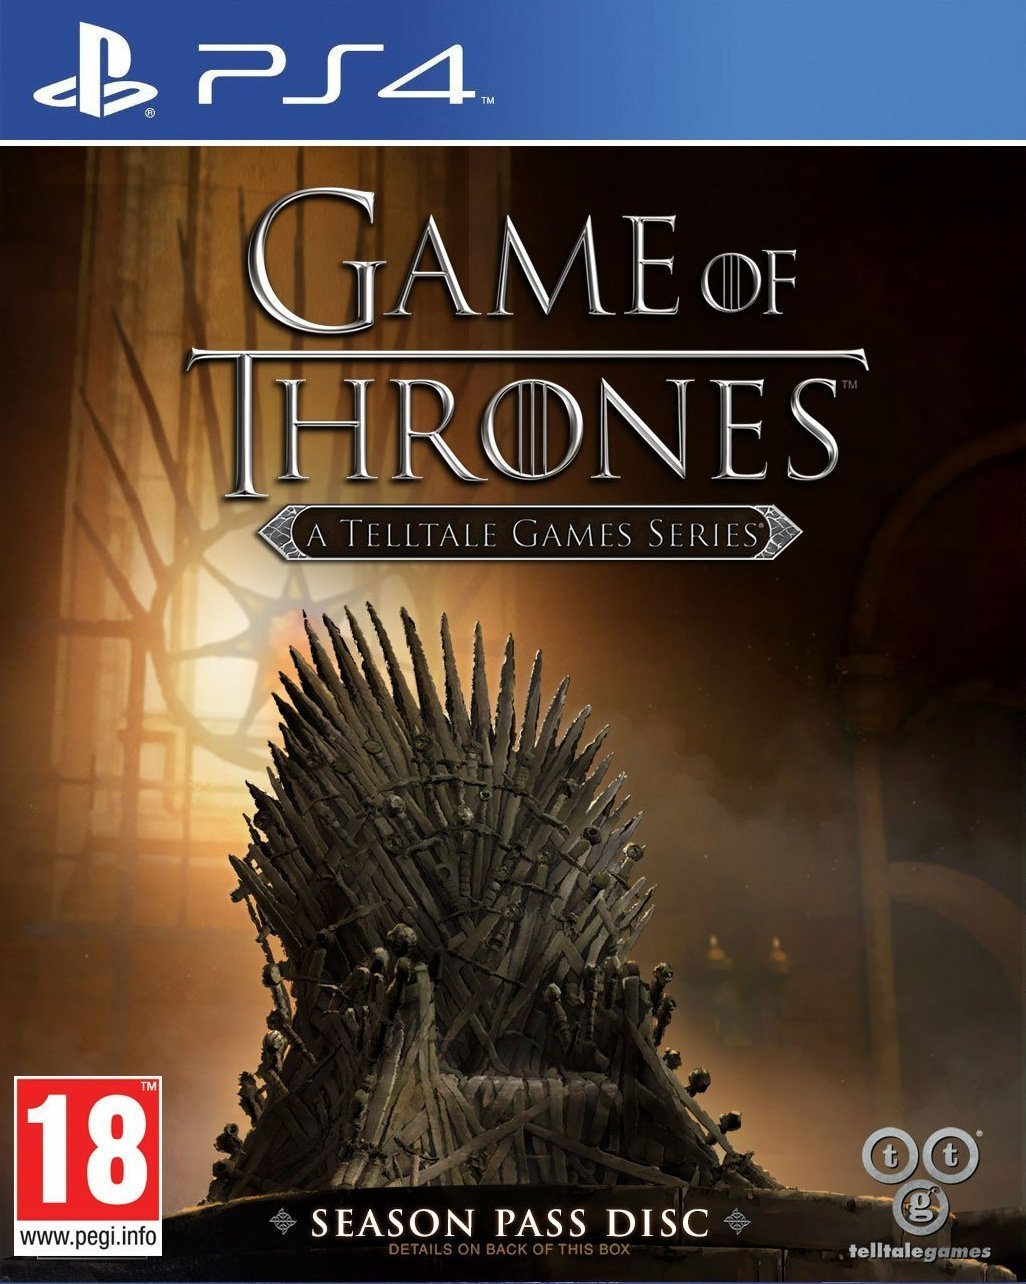 Game of Thrones - A Telltale Games Series (PS4) imagen